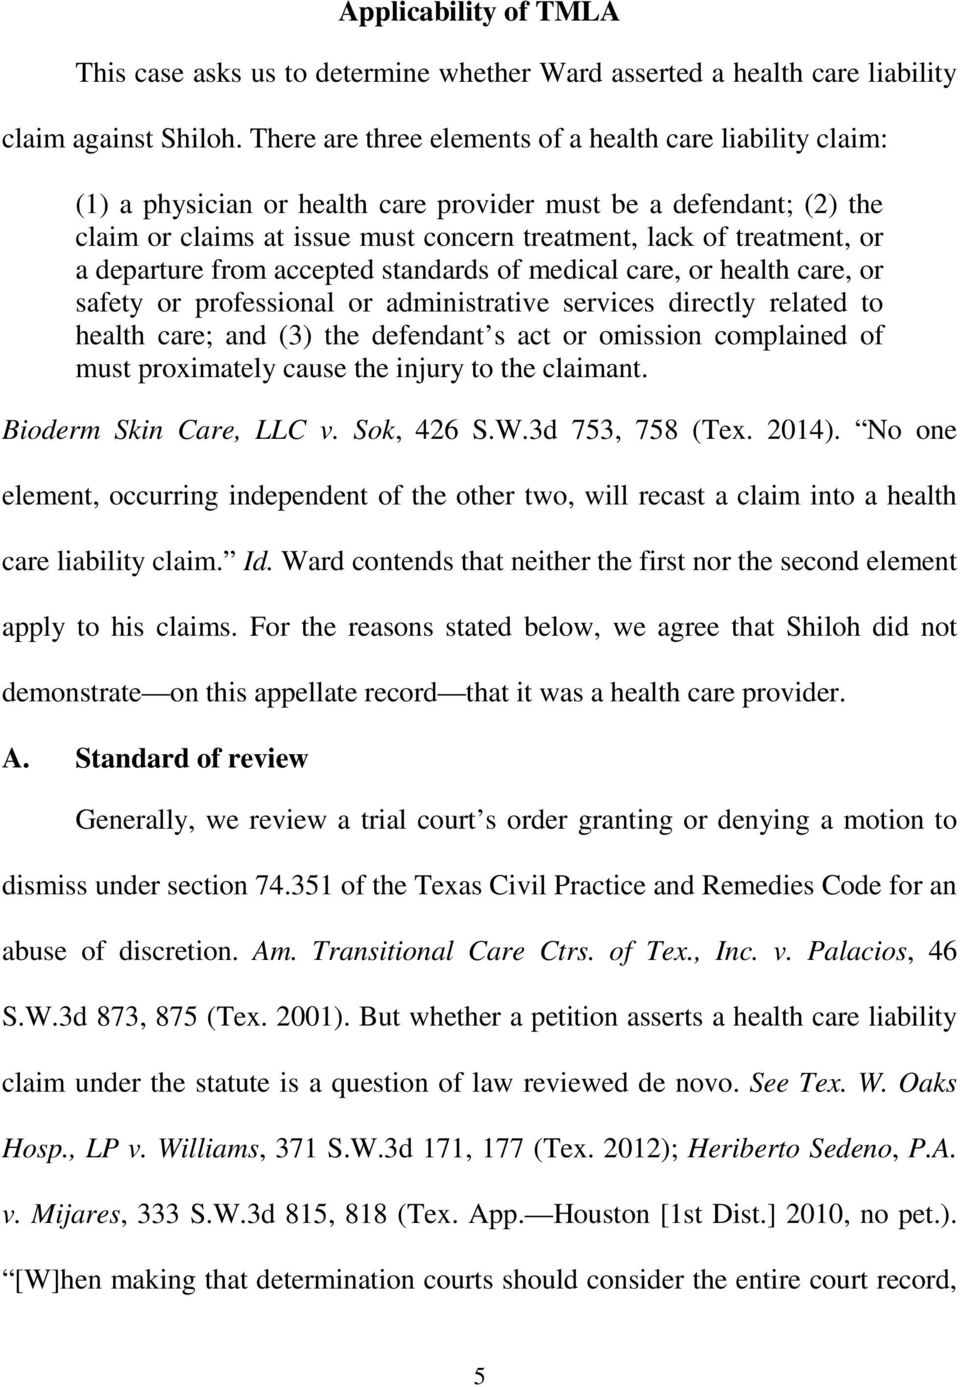 a departure from accepted standards of medical care, or health care, or safety or professional or administrative services directly related to health care; and (3) the defendant s act or omission